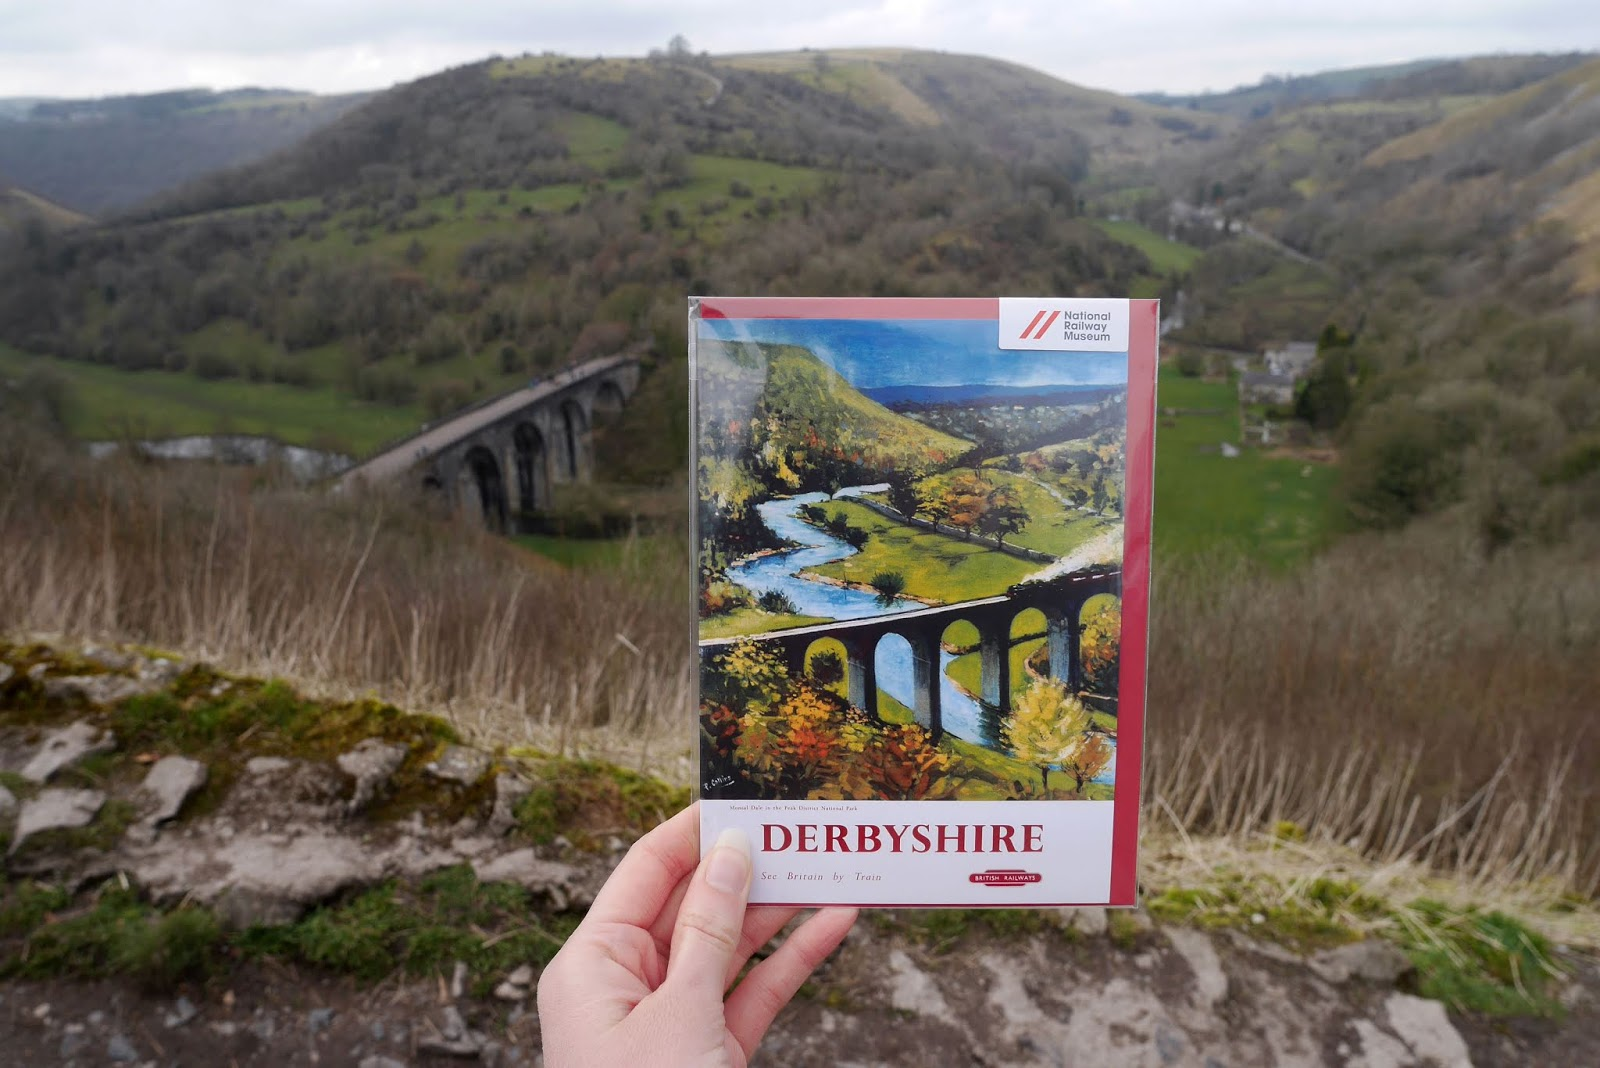 Vintage Derbyshire Railway poster in front of the Monsal Valley, Peak District National Park